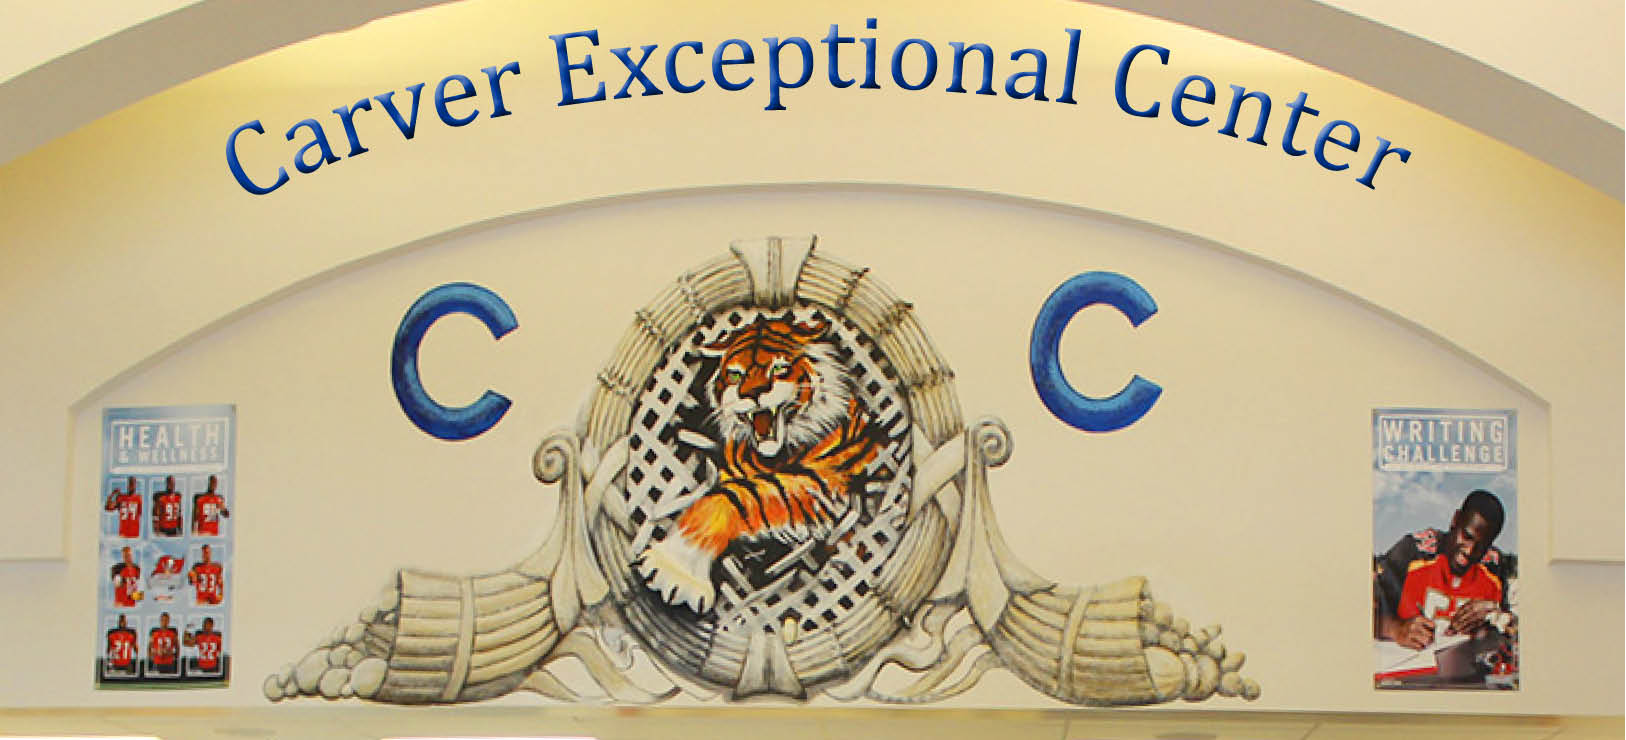 Image for Caring for community at Carver Exceptional Center